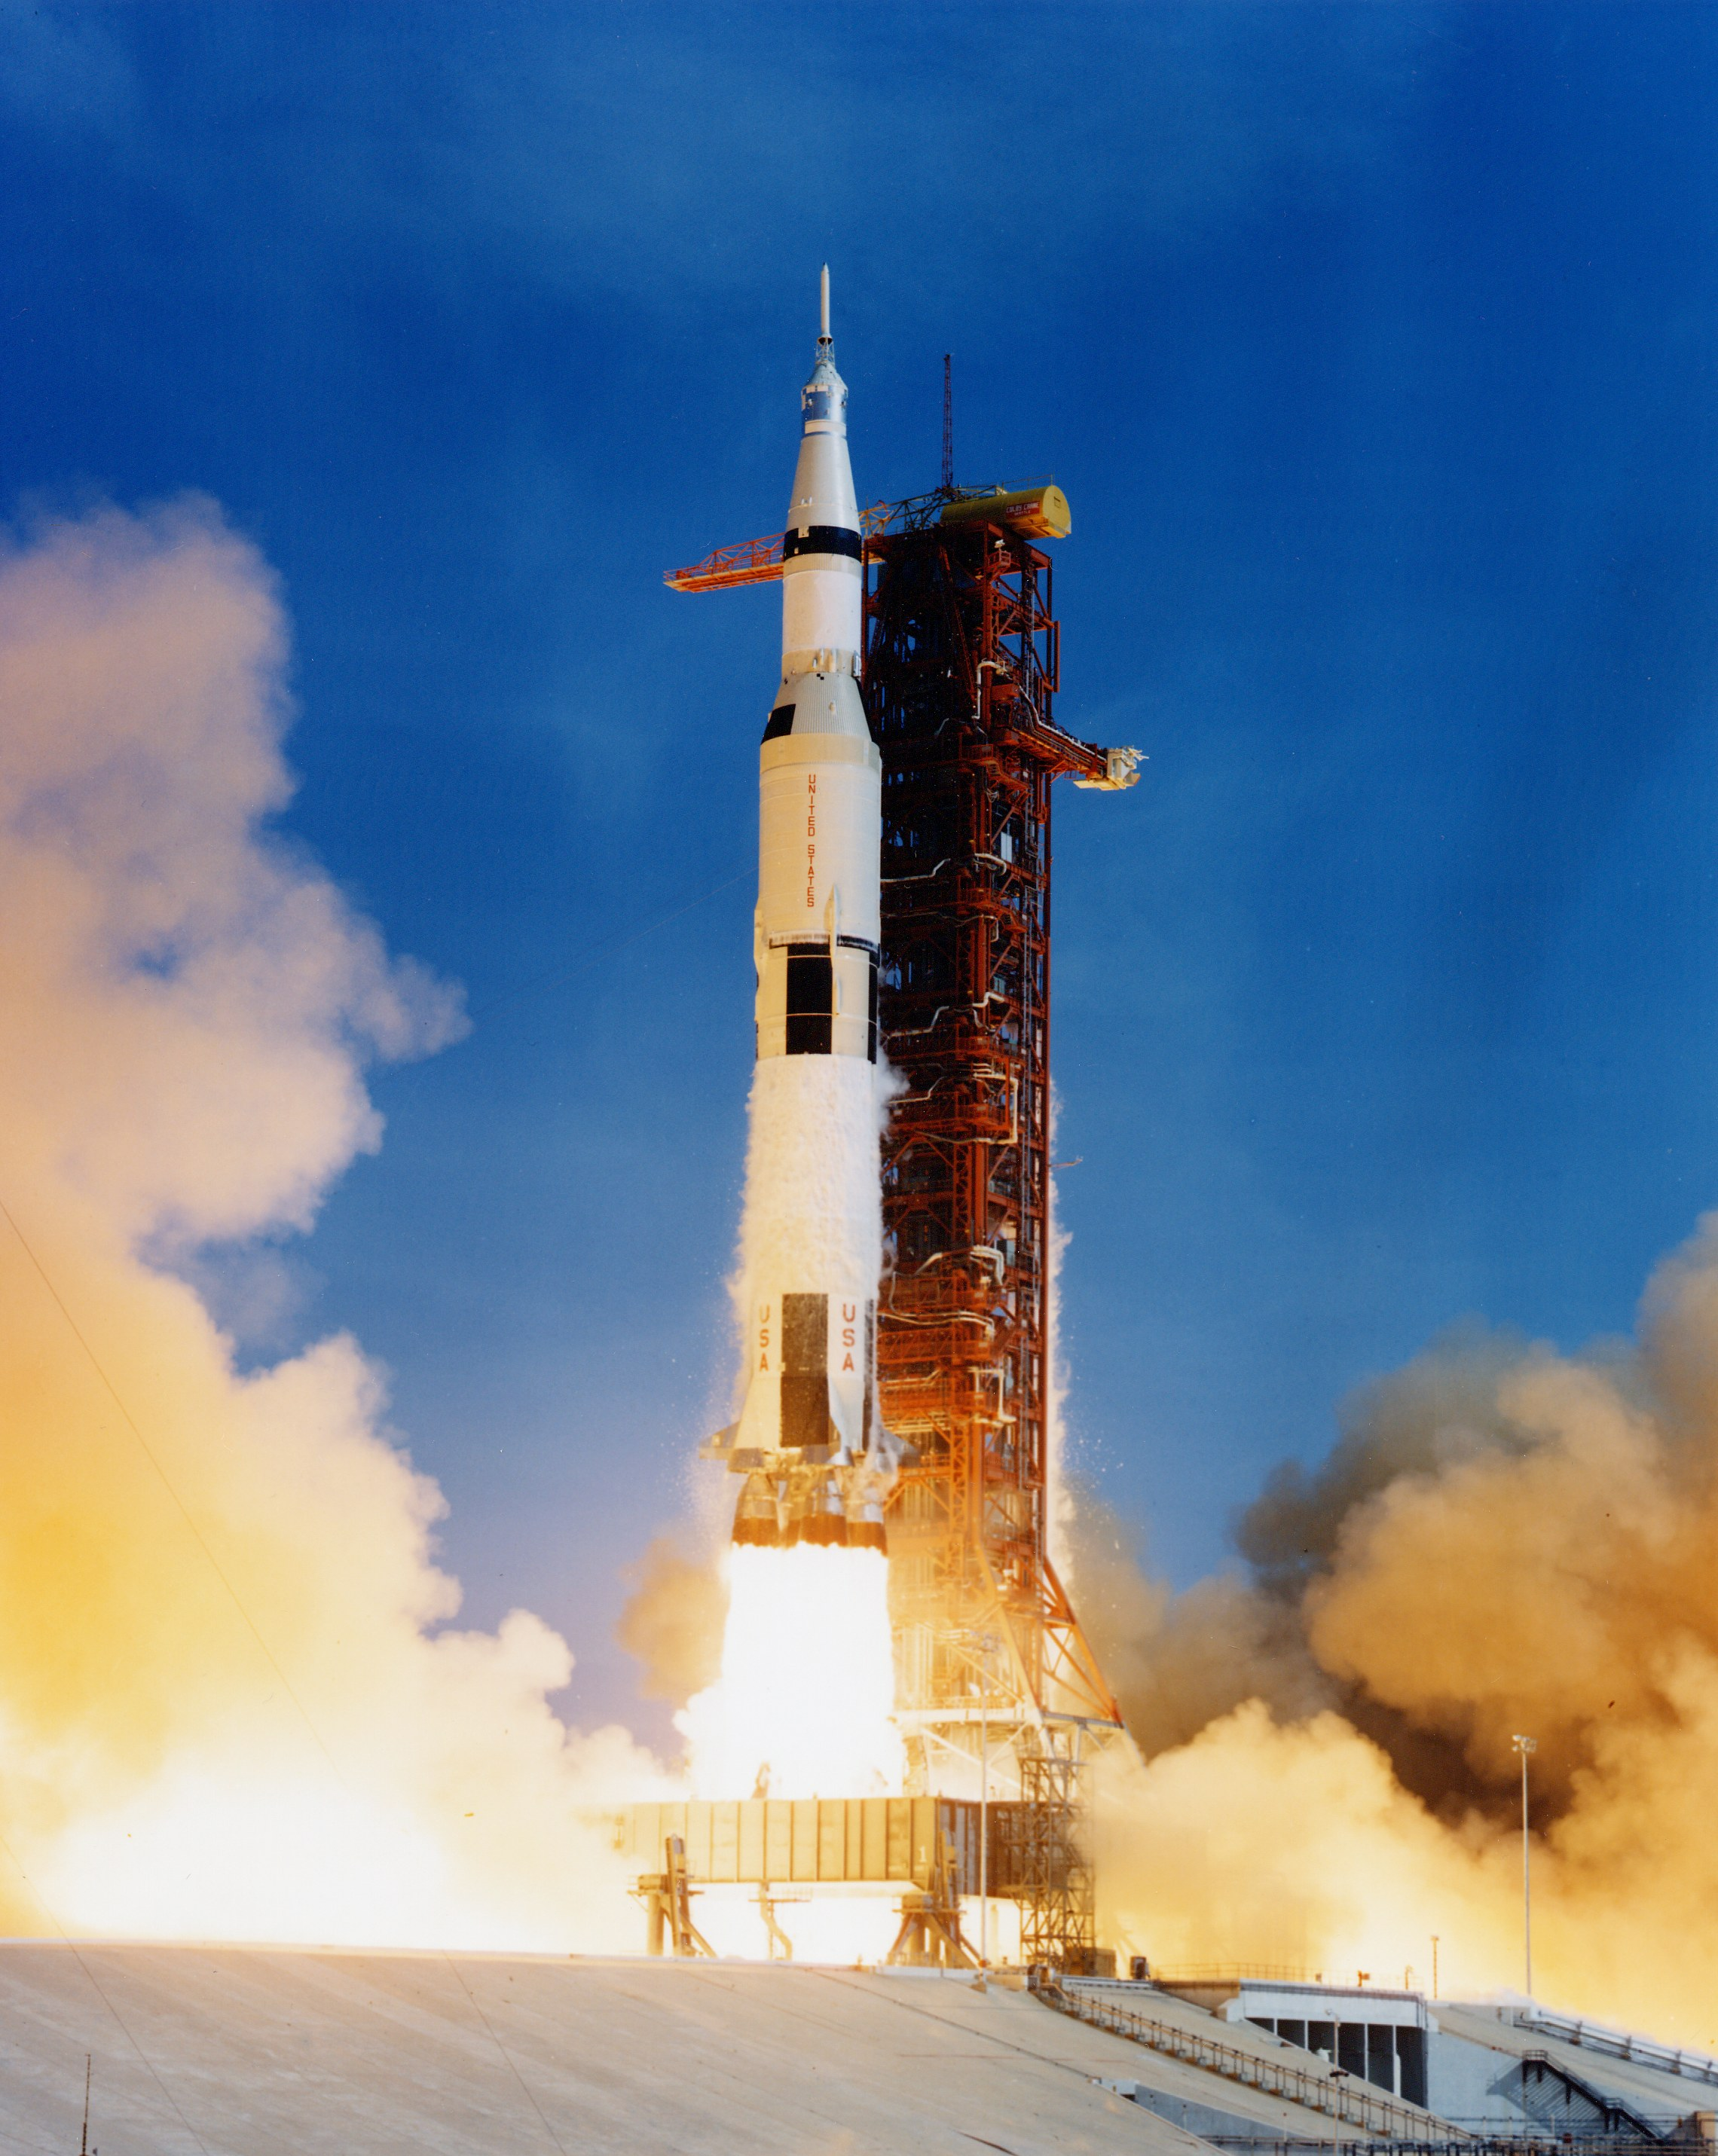 Datei:Apollo 11 Saturn V lifting off on July 16, 1969.jpg – Wikipedia